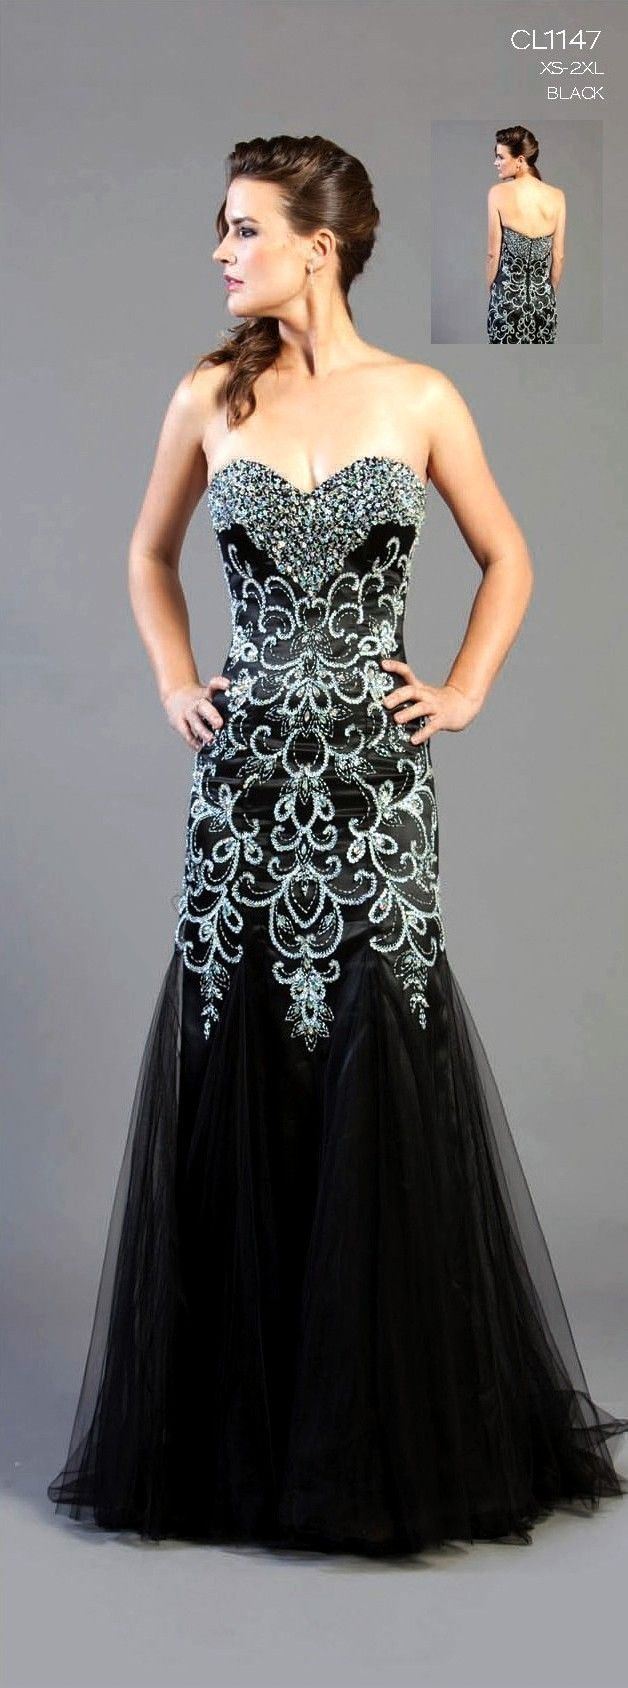 Unique Prom Dresses - Gown And Dress Gallery